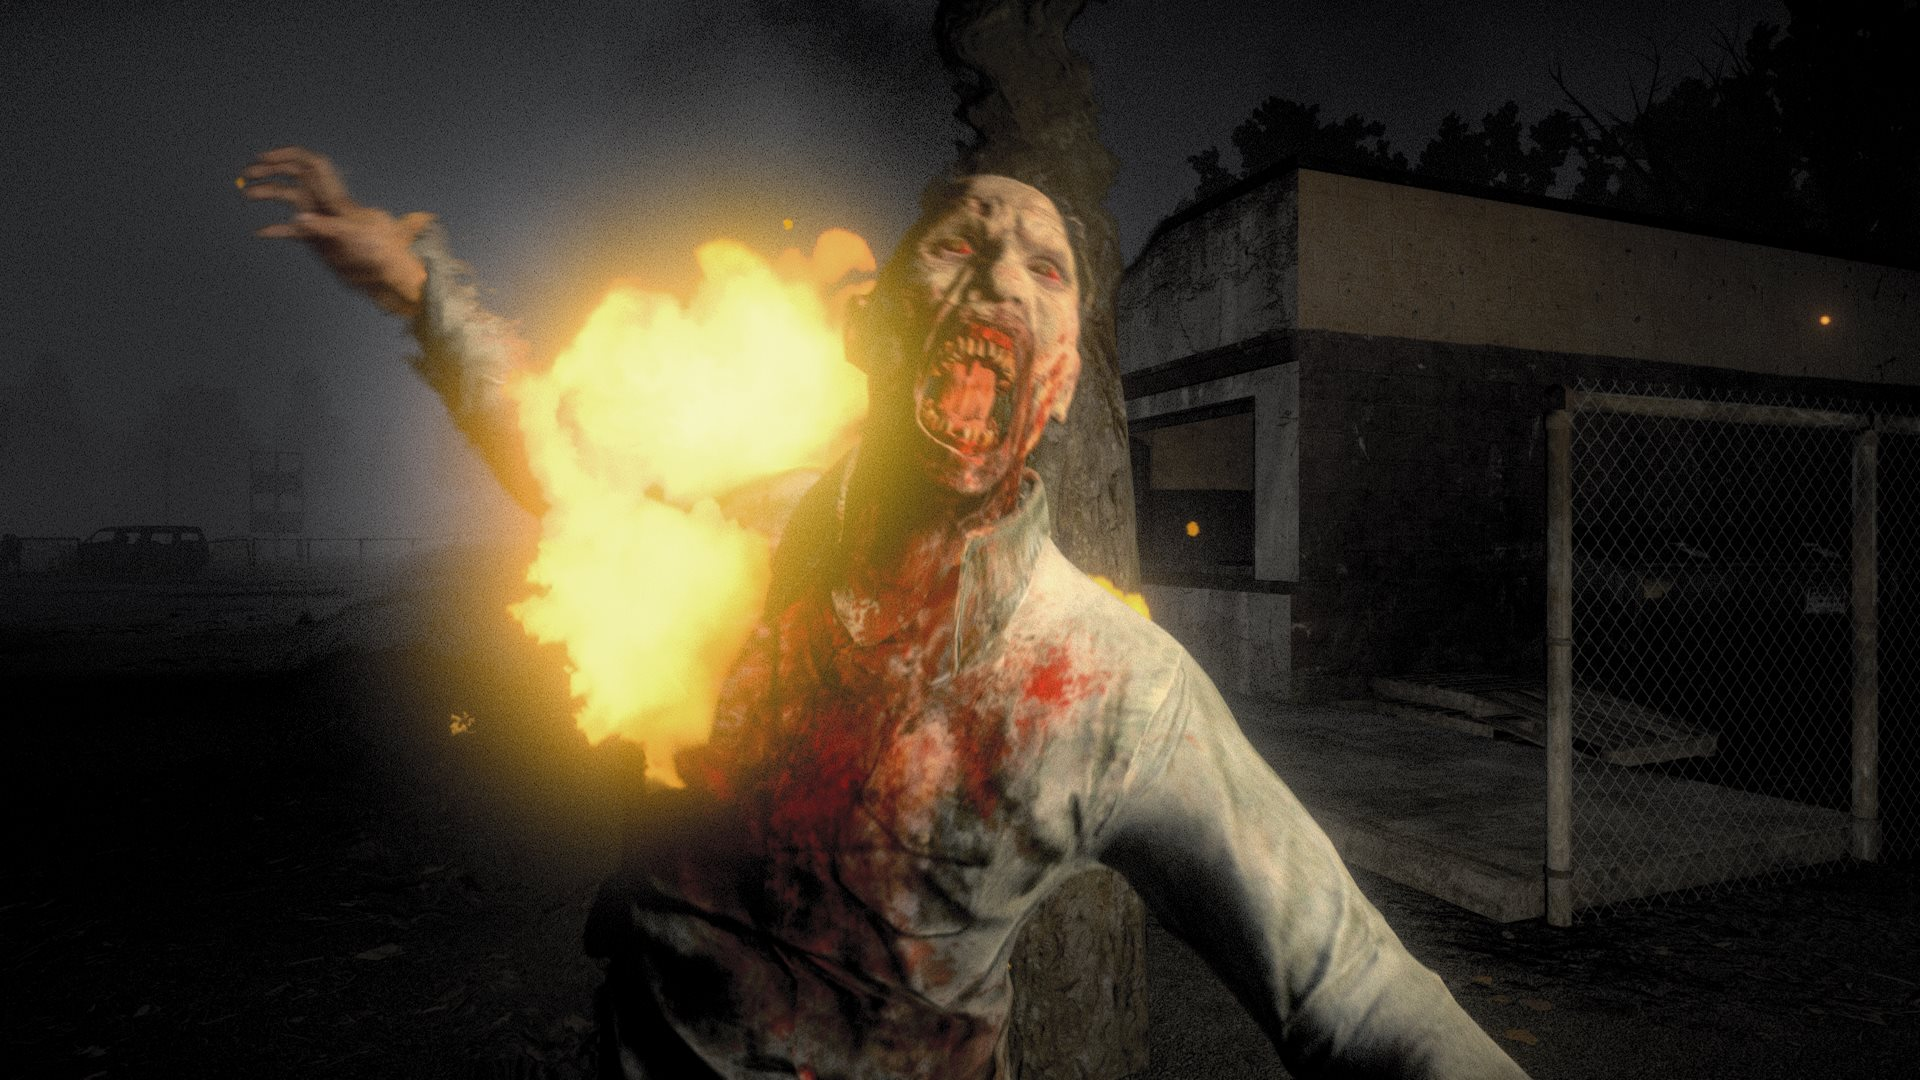 H1Z1 update brings female zombies, a new hospital and more